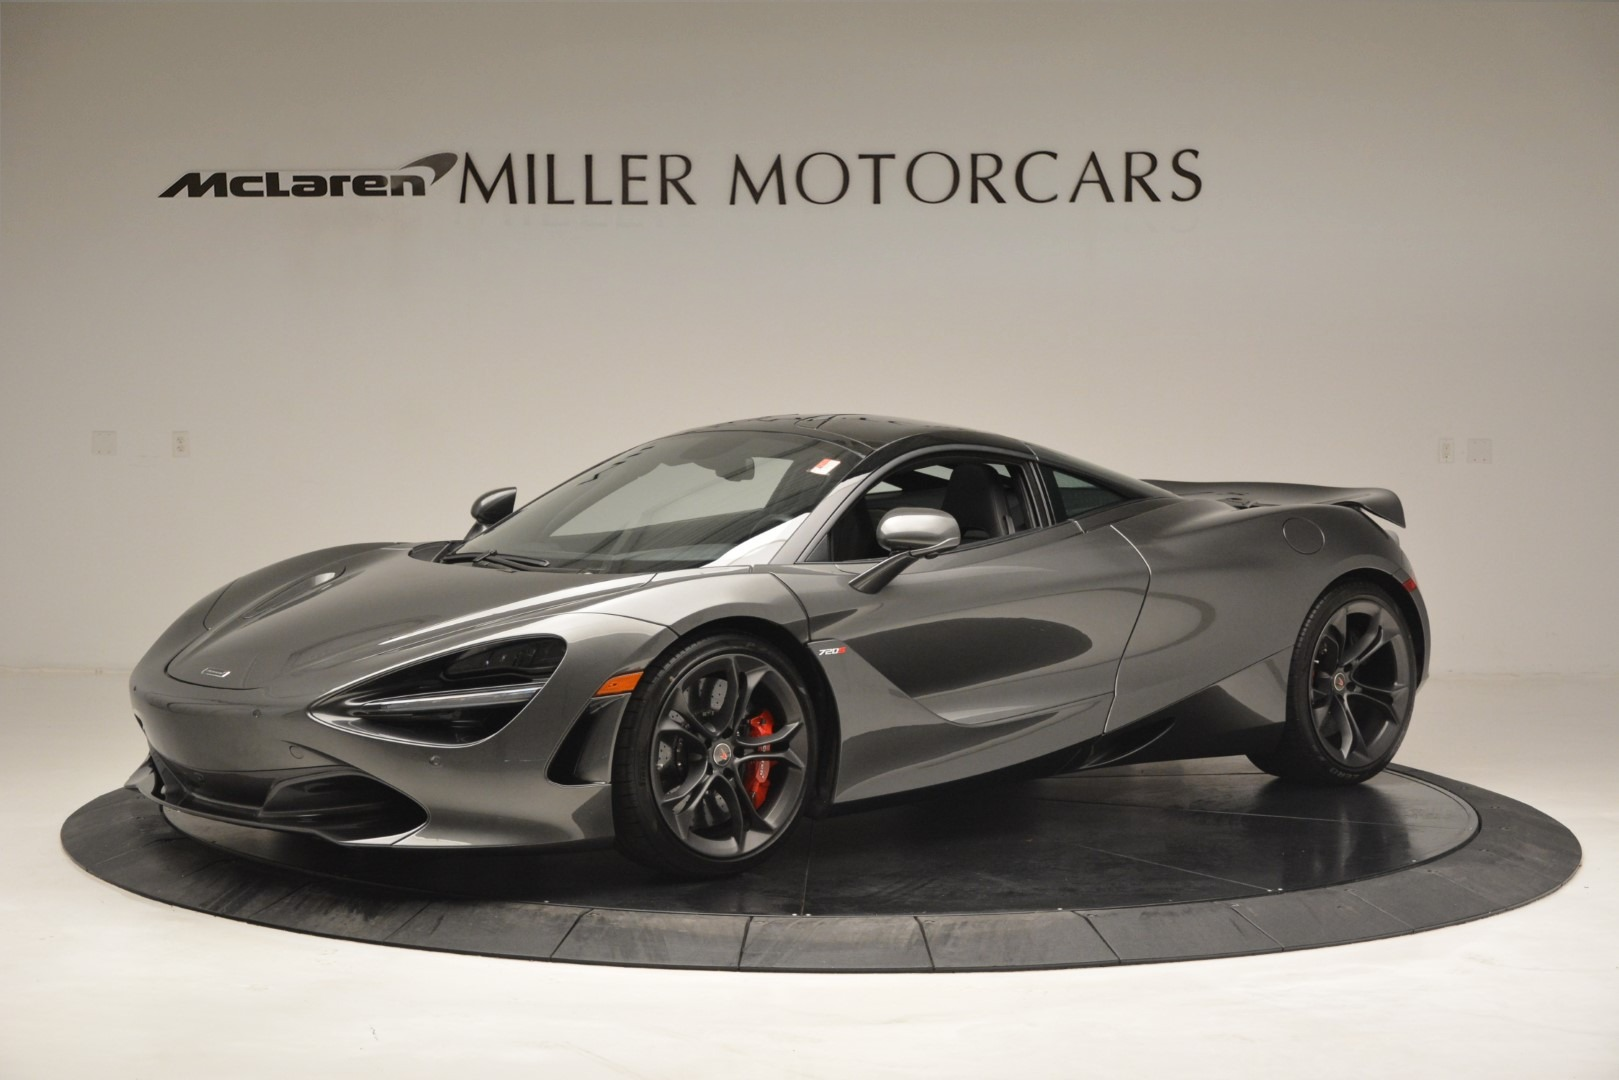 Used 2018 McLaren 720S for sale $269,900 at McLaren Greenwich in Greenwich CT 06830 1